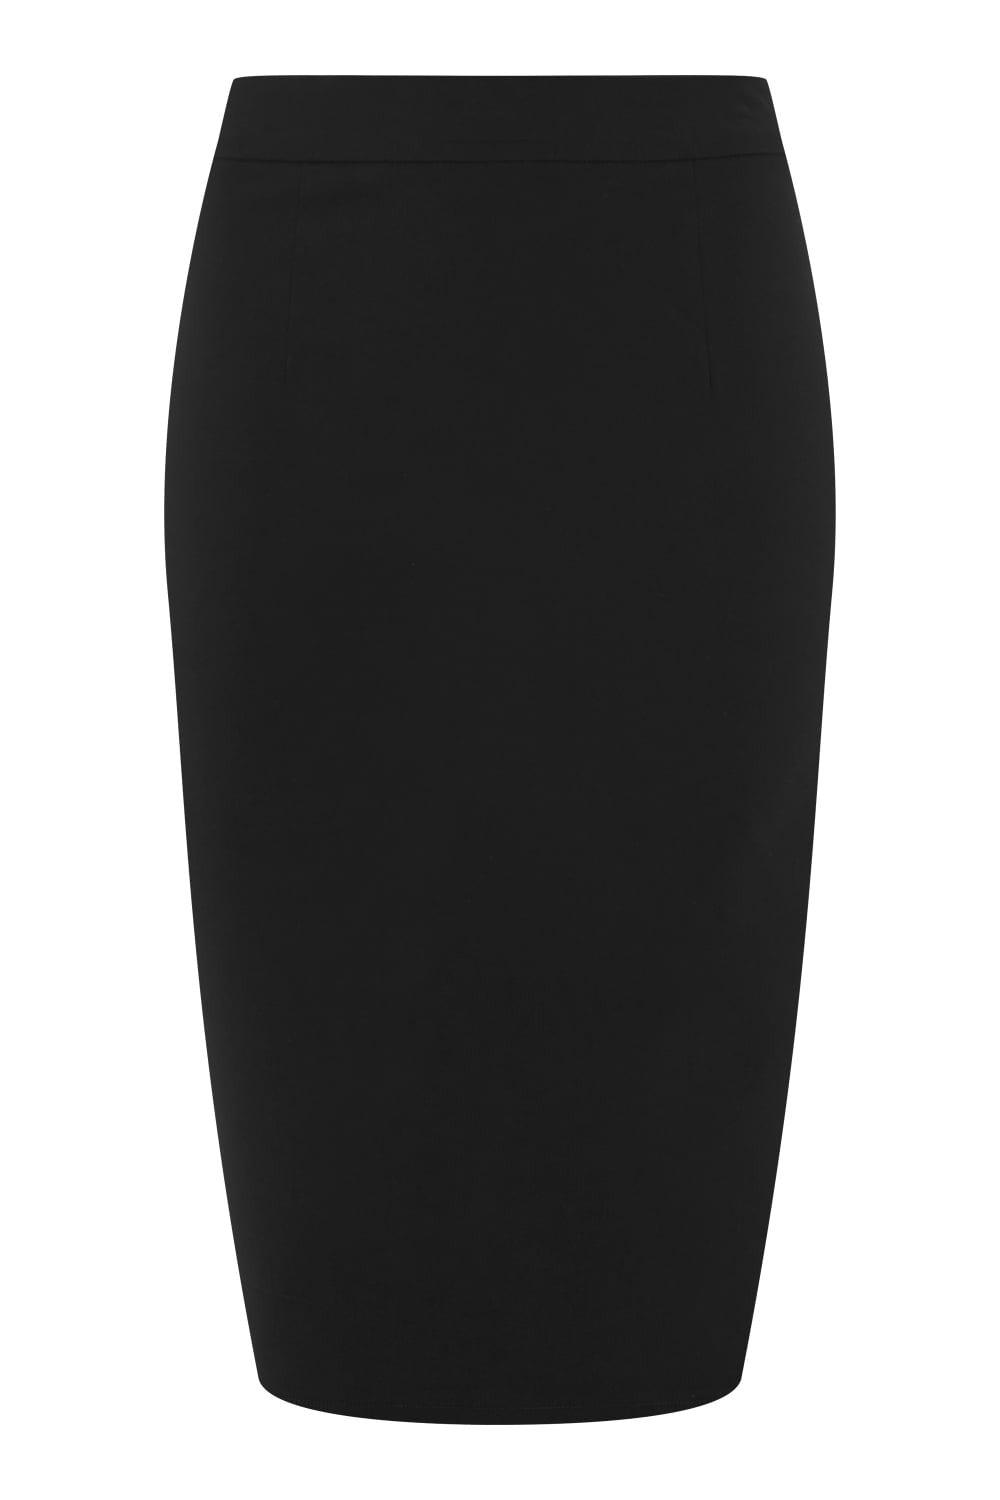 The Joanie Pencil Skirt in black - NOW ON SALE!